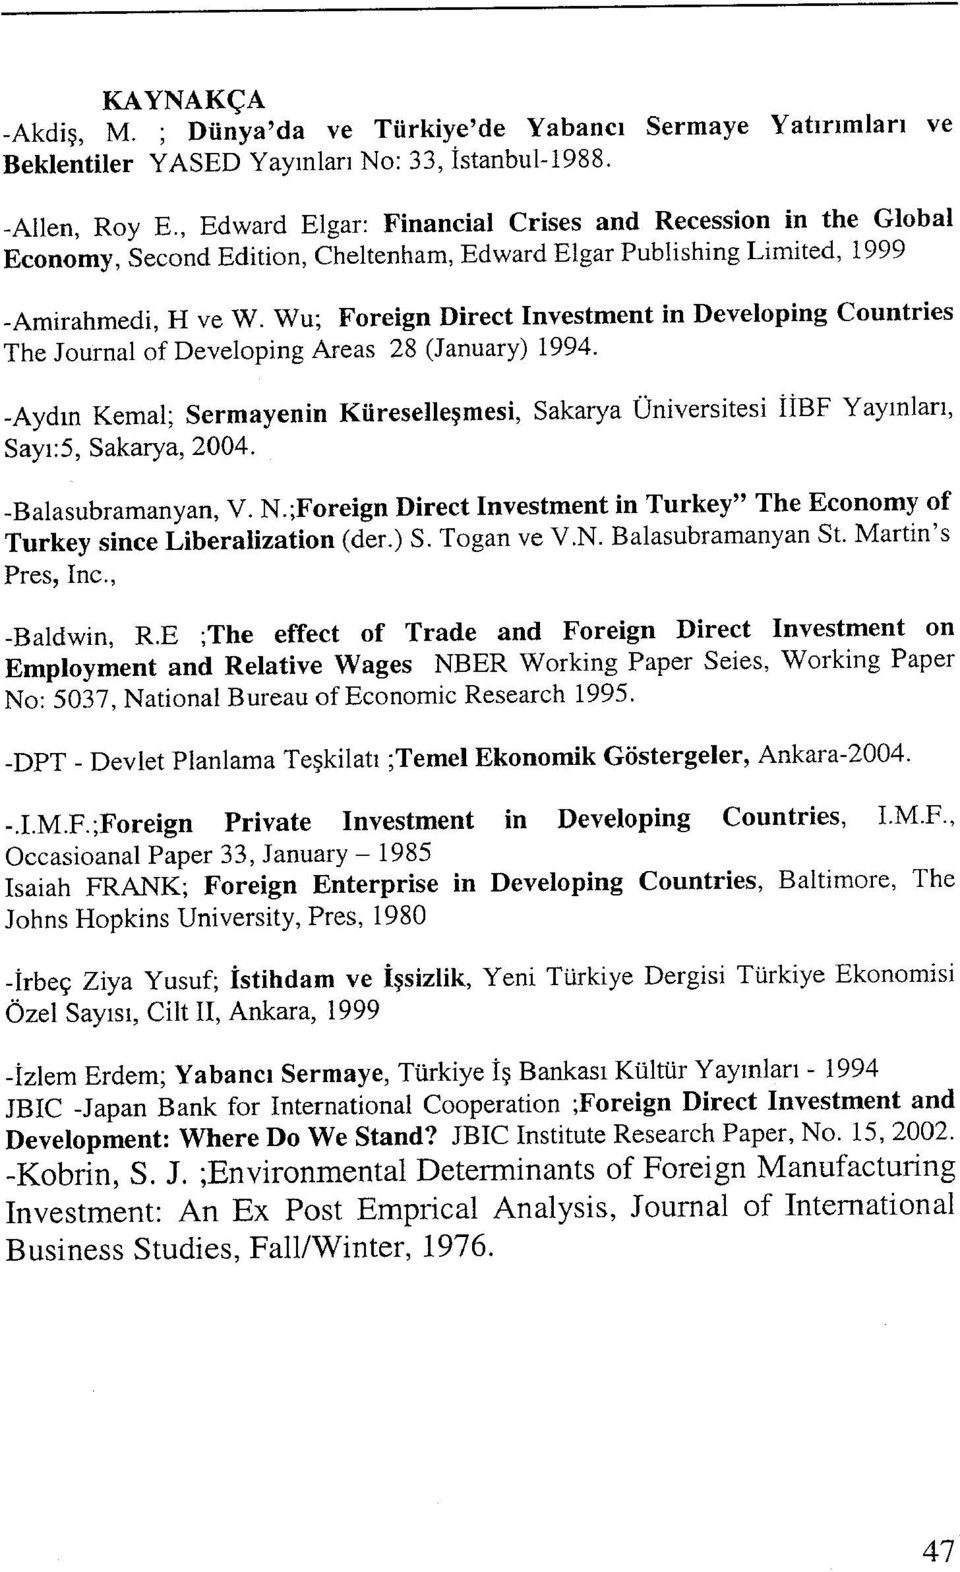 Wu; Foreign Direct Investment in Developing Countries The Journal of Deve10ping Areas 28 (Ianuary) 1994.